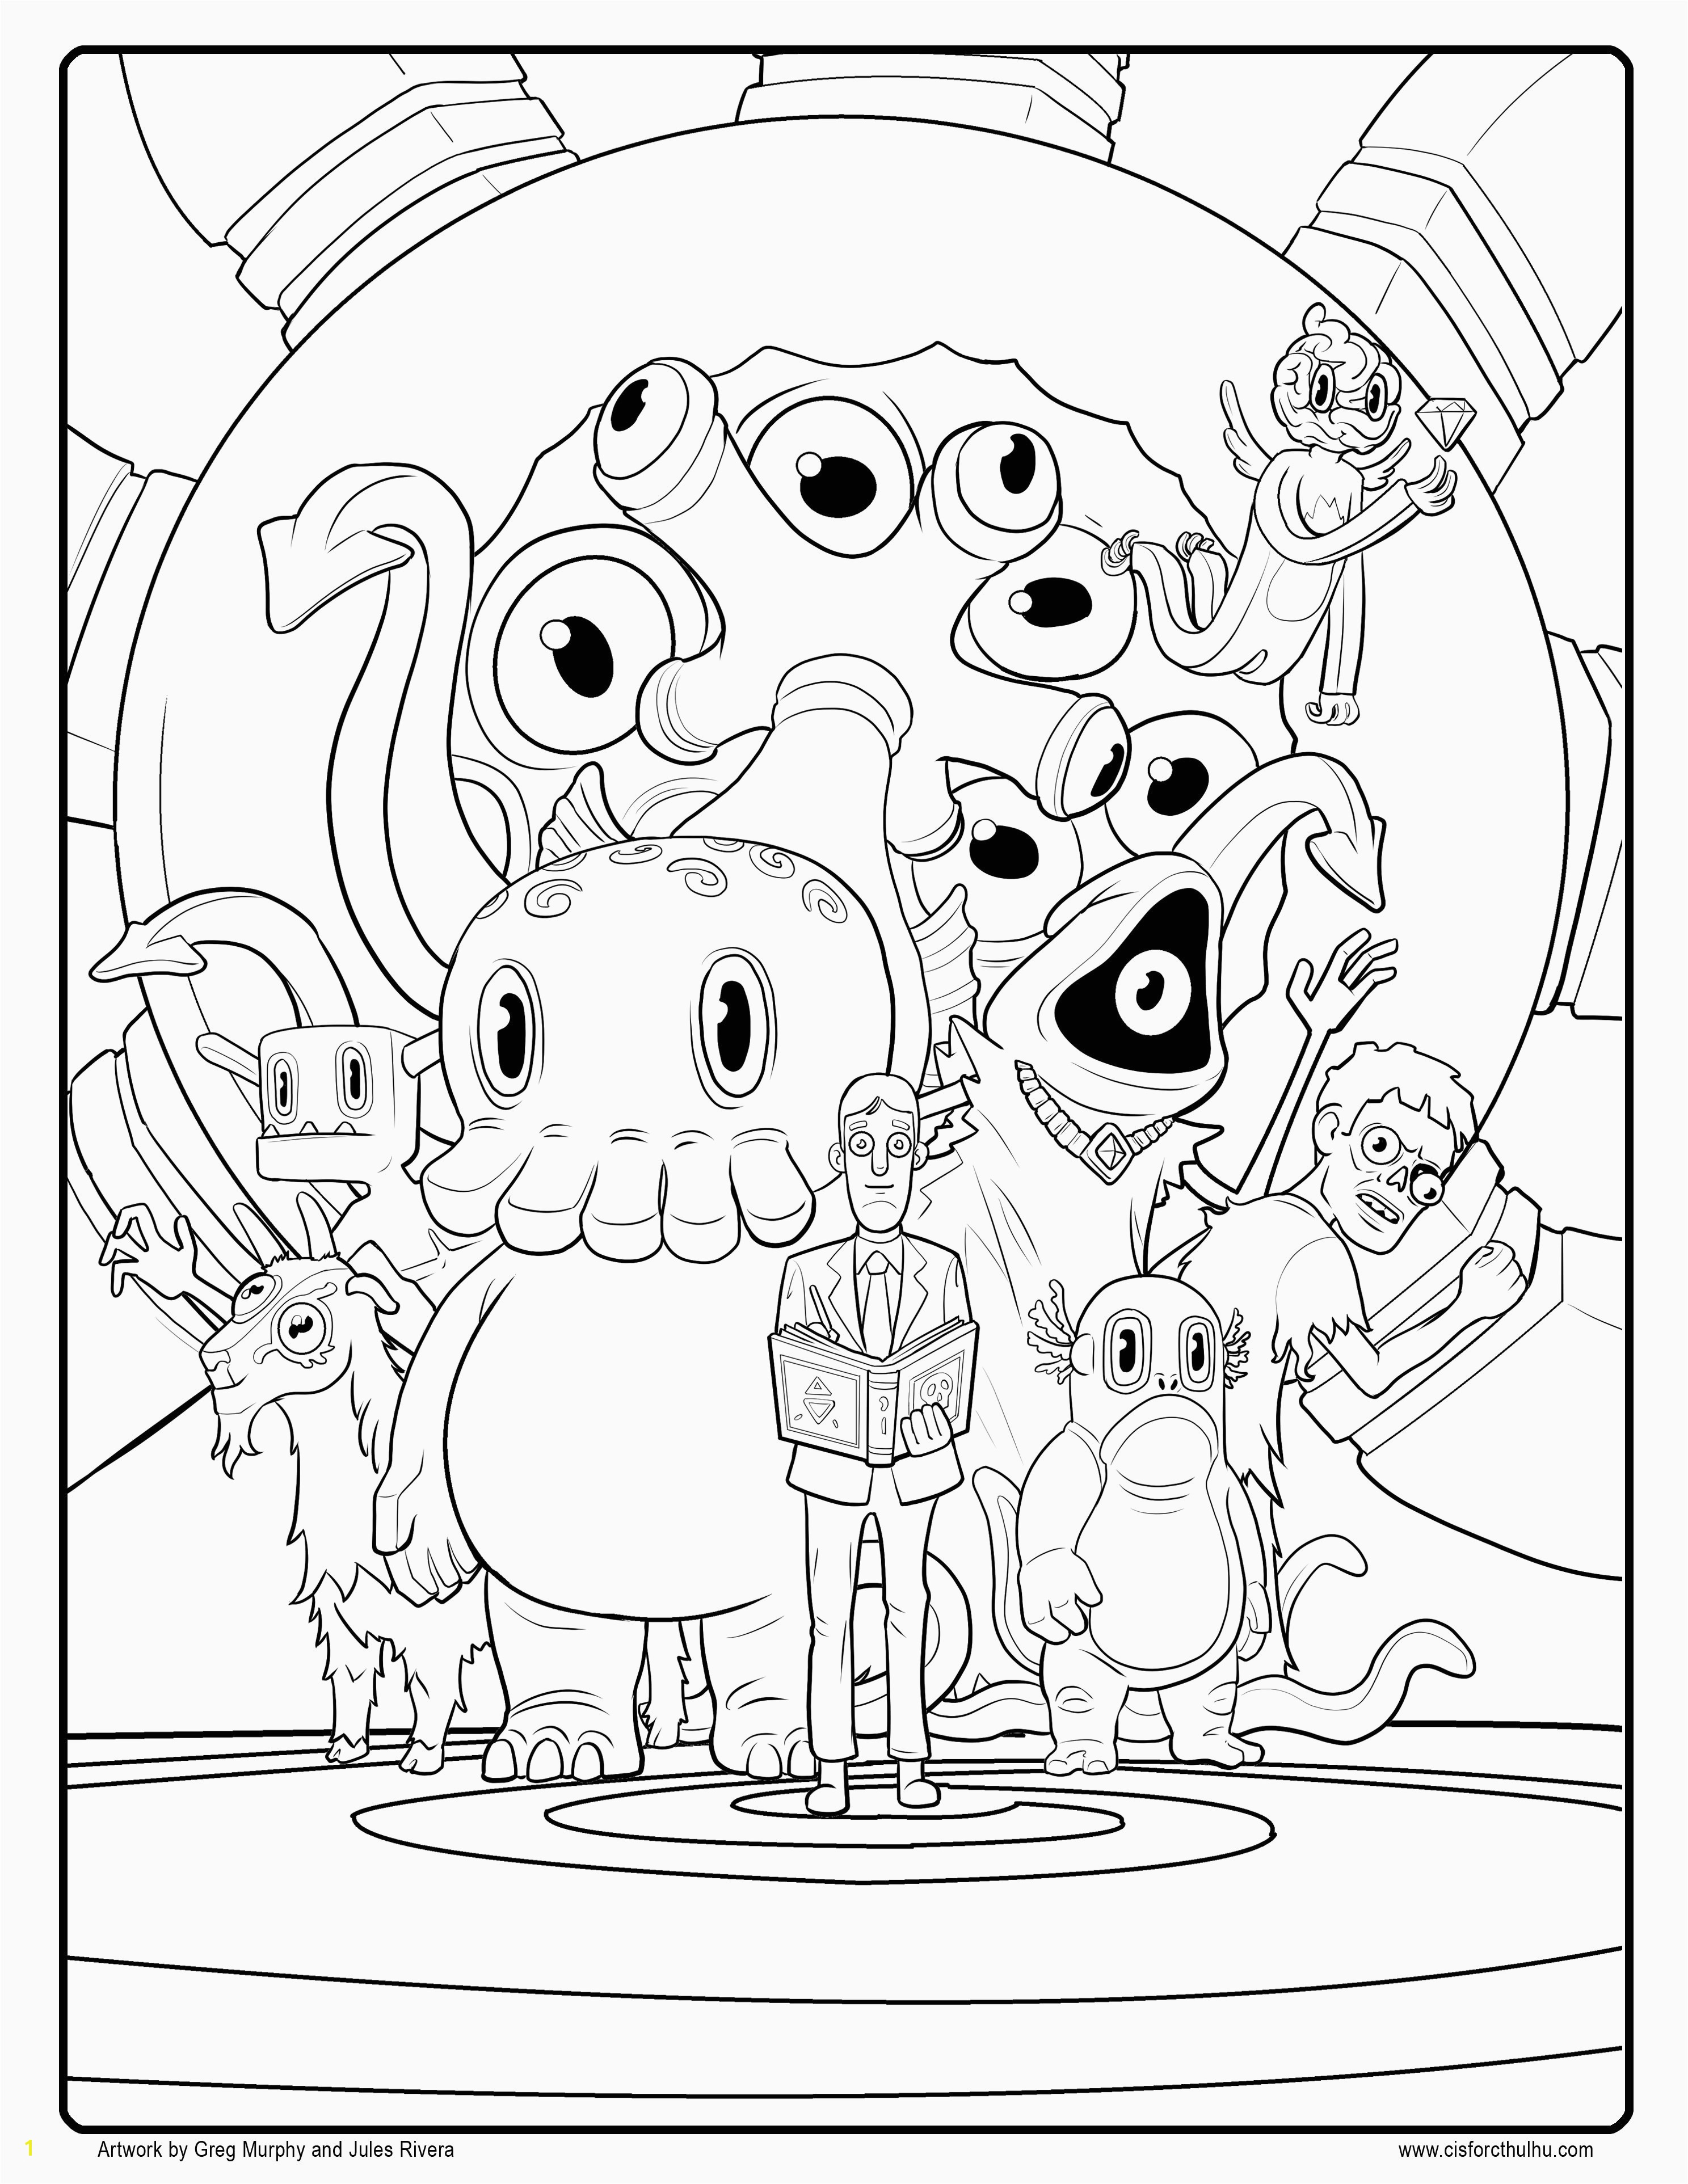 Crayola Christmas Coloring Pages New Coloring Pages Heathermarxgallery Collection